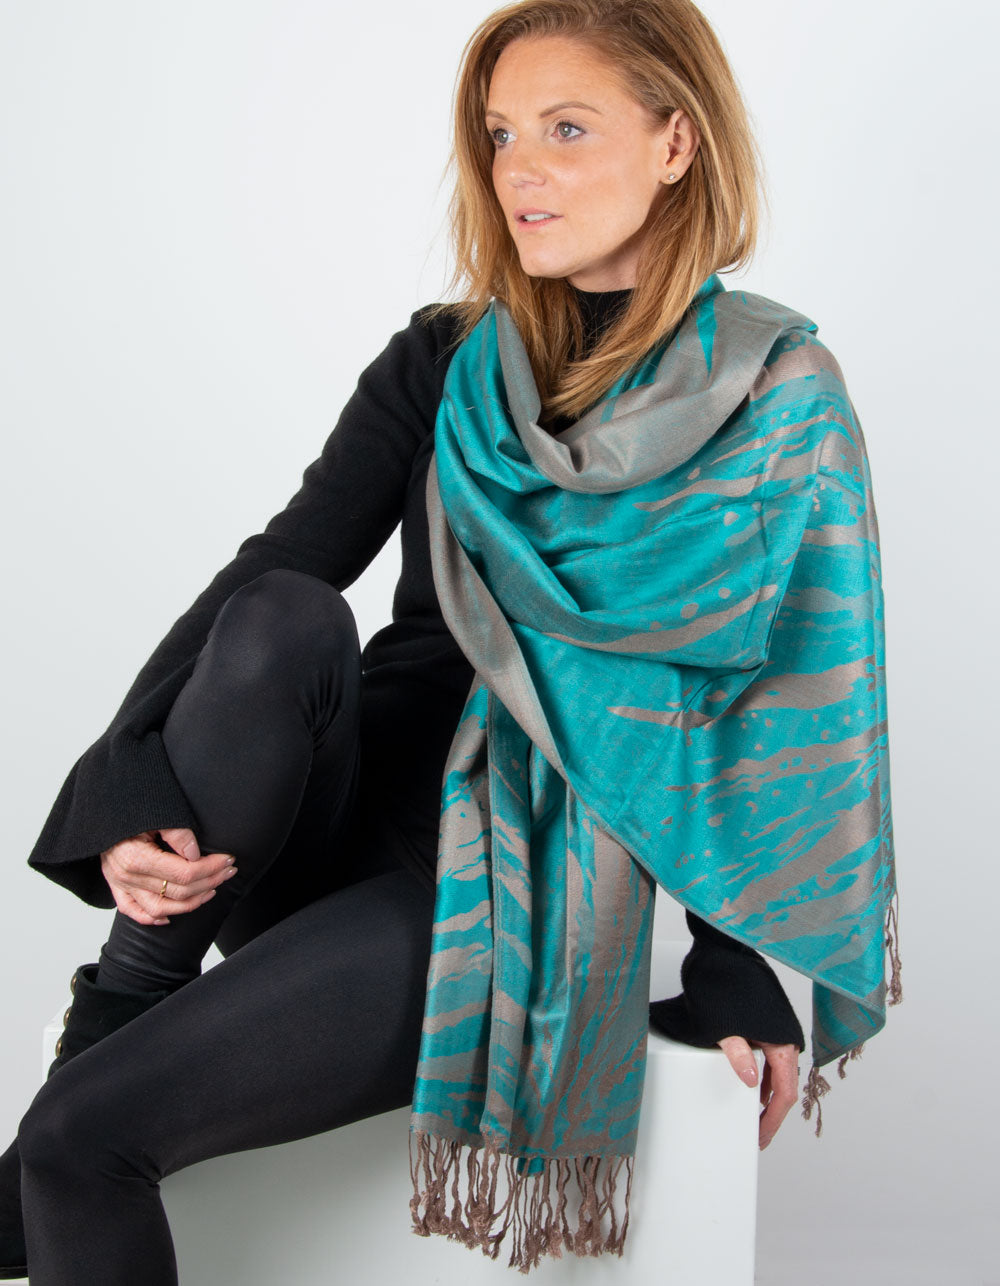 an image showing a green and bronze splash patterned pashmina